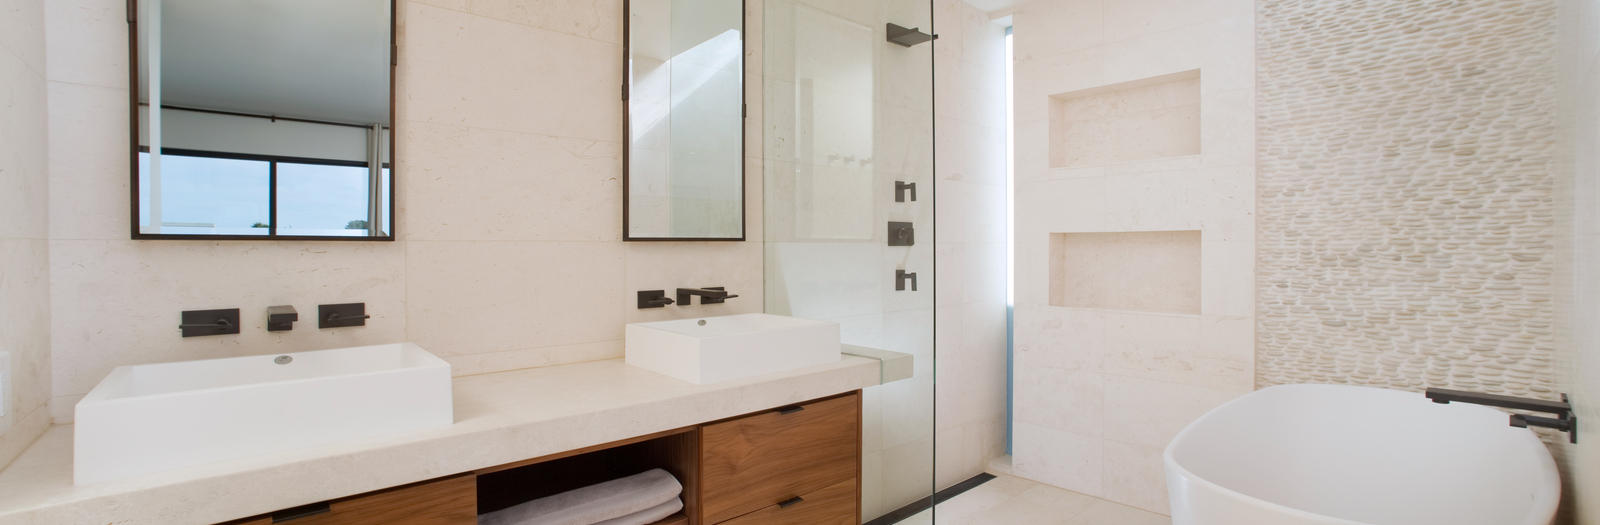 Contemporary Bathroom with frameless glass partition